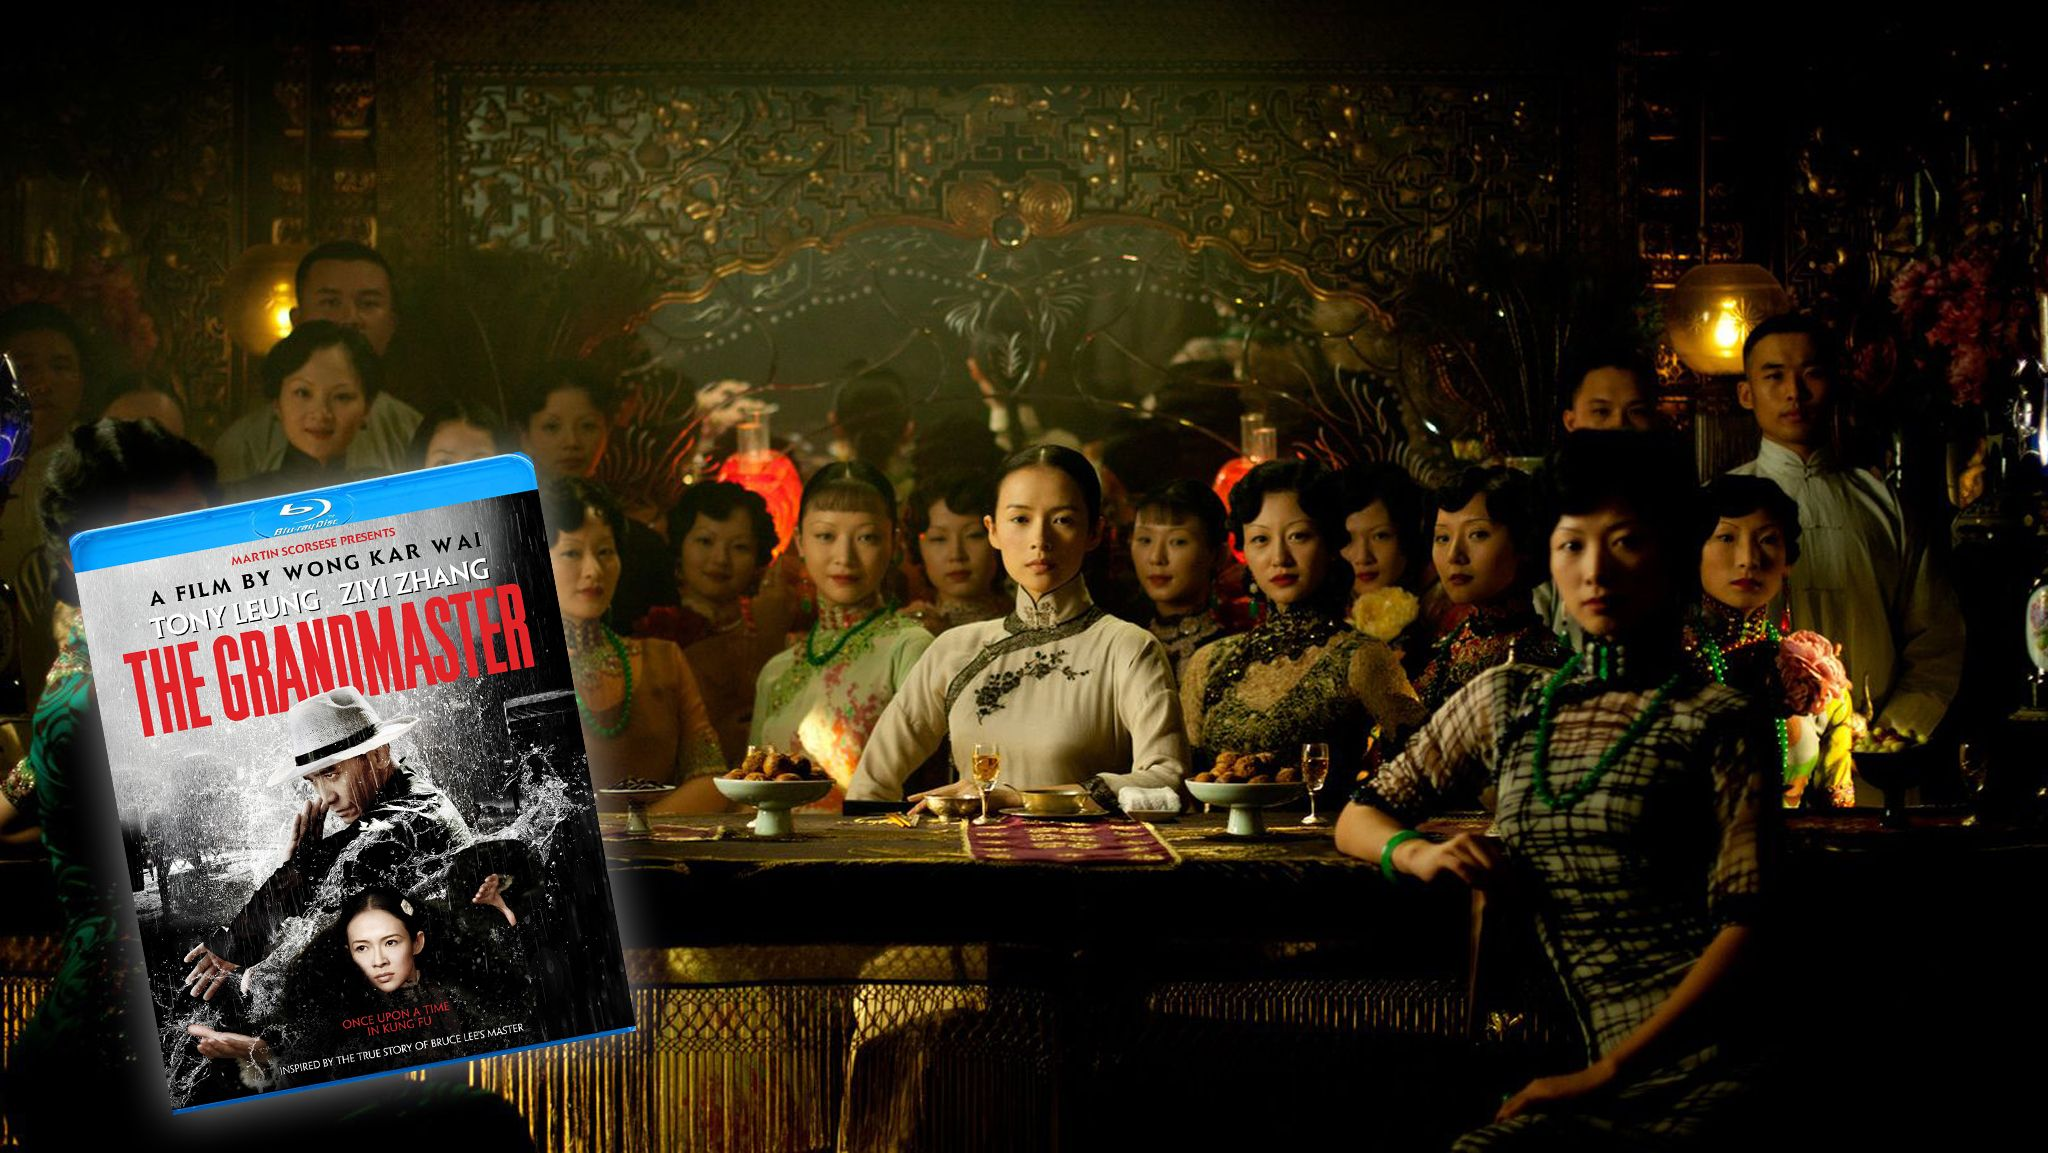 On DVD This Month: The Grandmaster